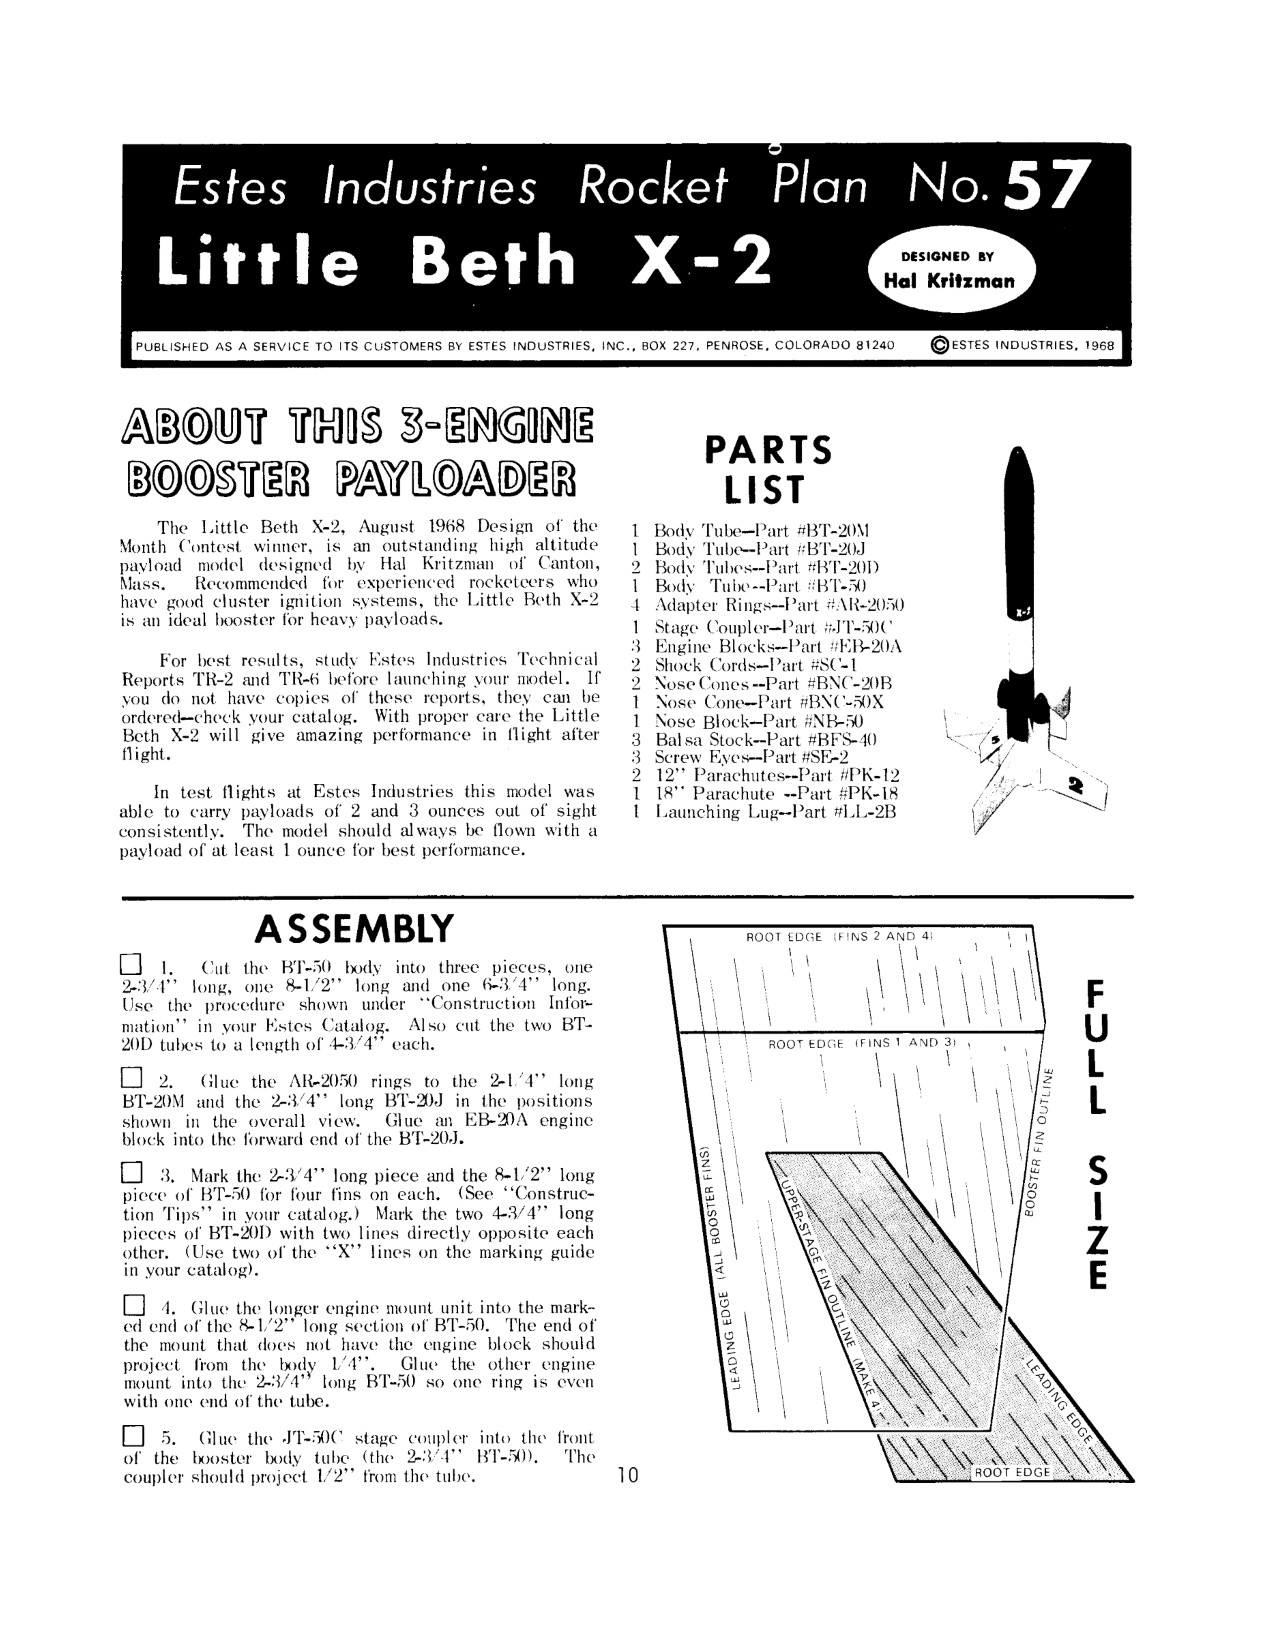 little-beth-x-2.jpg